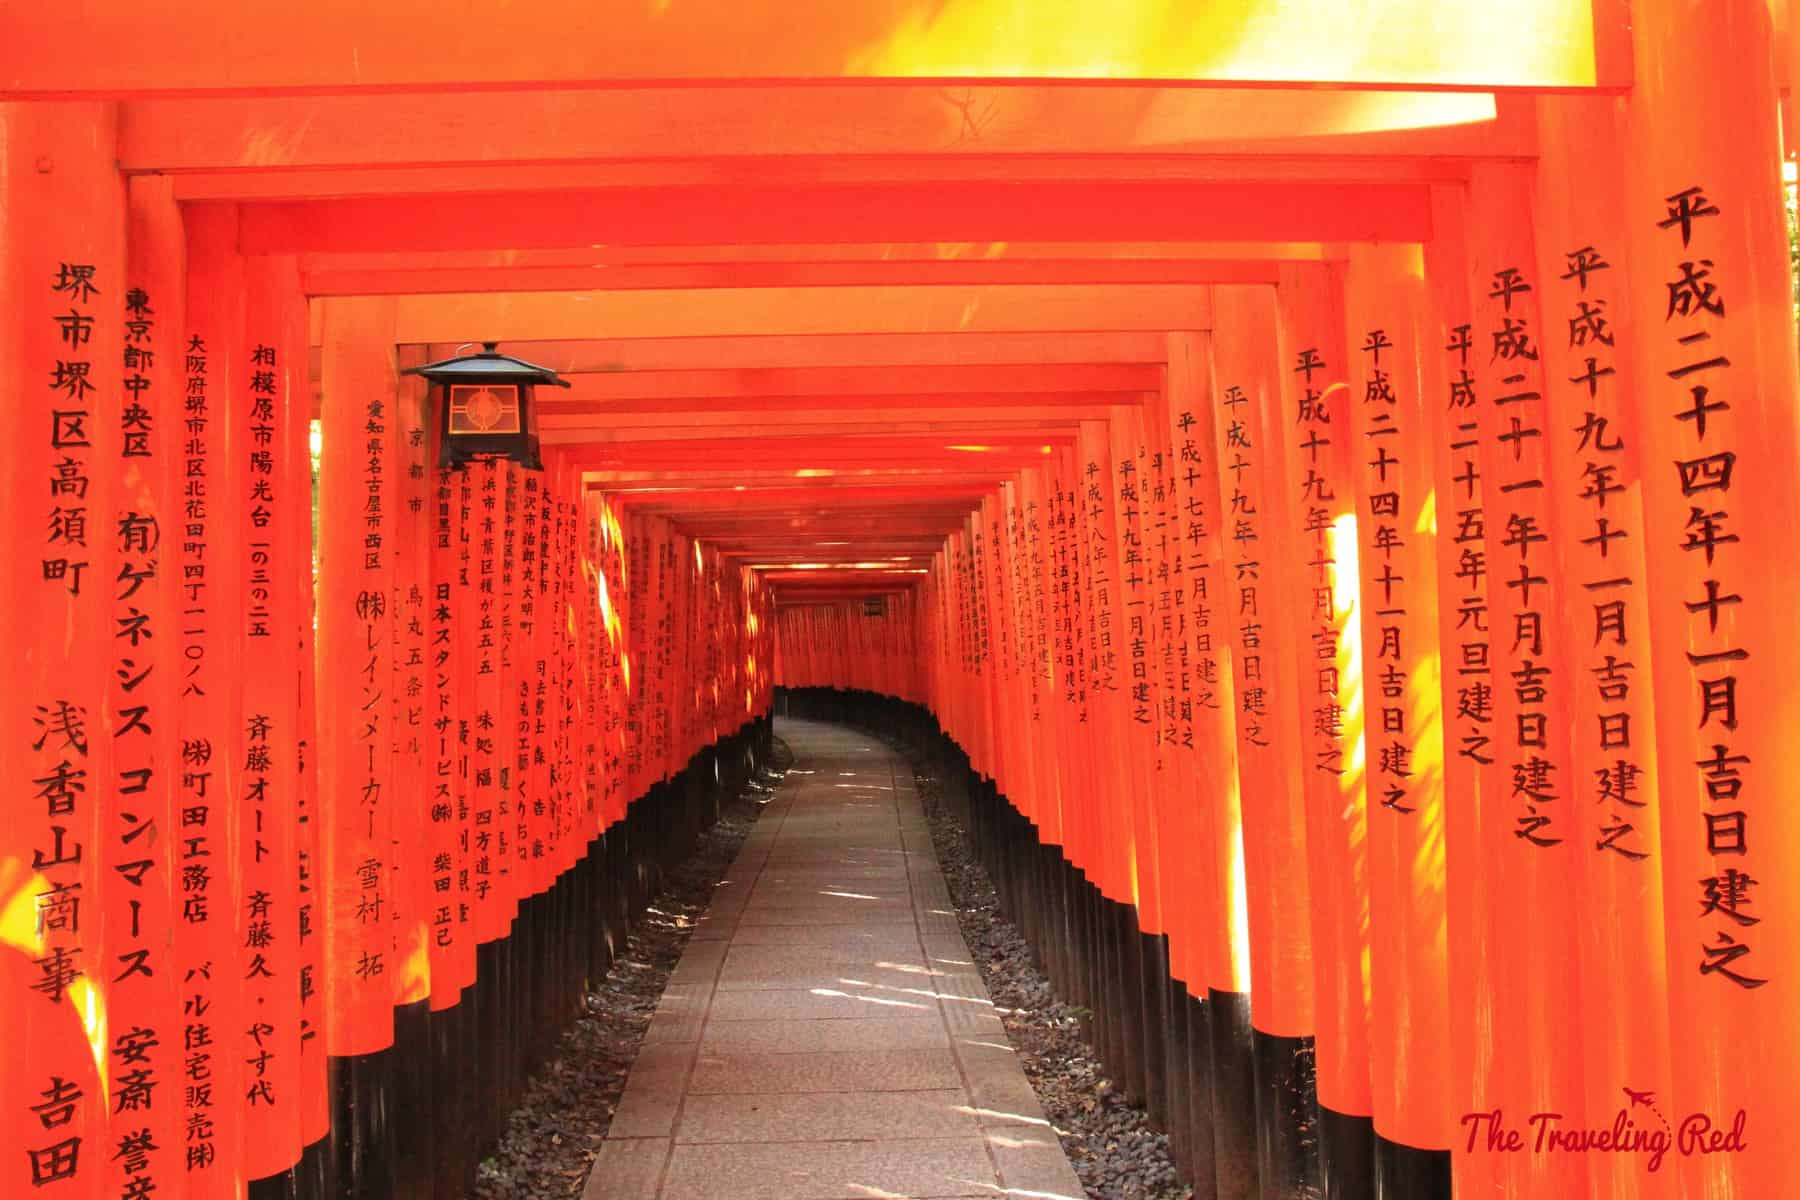 When in Kyoto you have to visit Fushimi Inari Shrine. It's famous in Japan for the pathway of orange torii gates. They say that over 10,000 torii gates create the pathway, which is 2.5-miles long, going uphill through the woods.